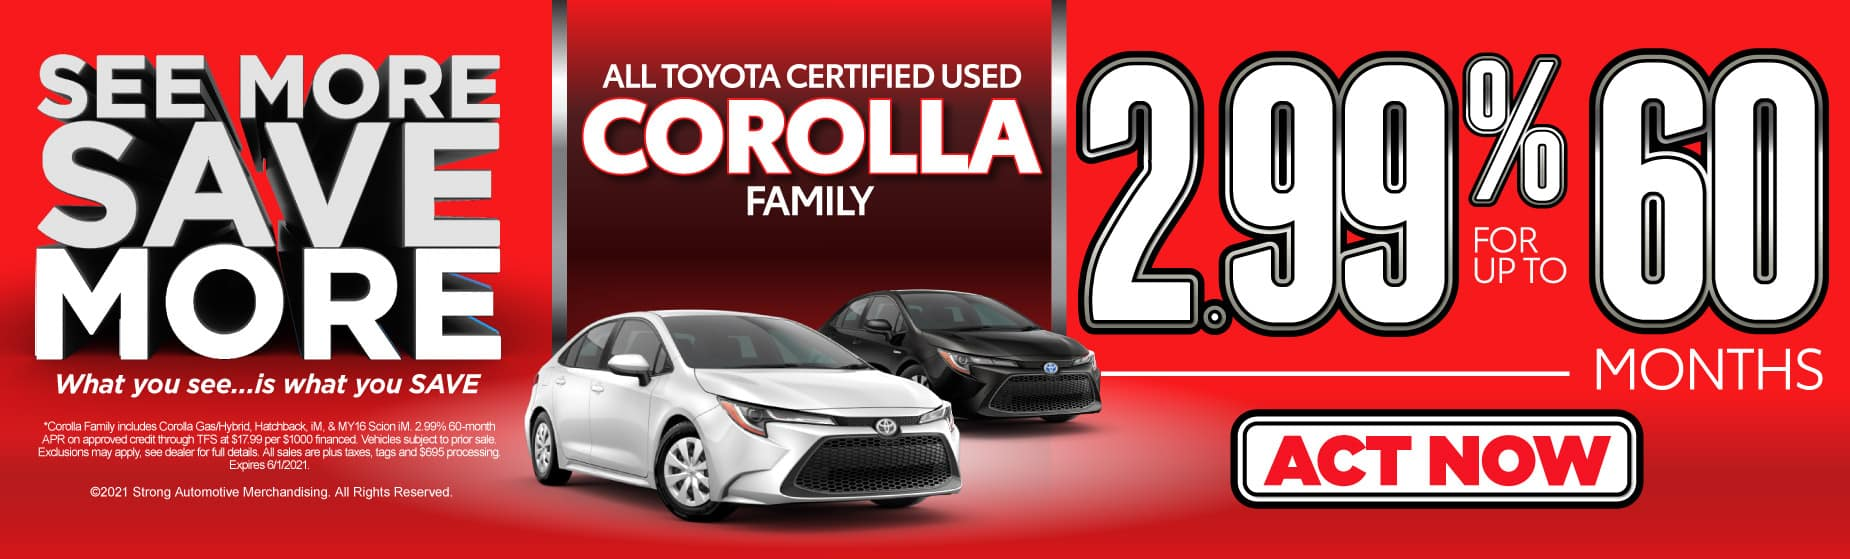 Used Corolla | 2.99% for up to 60 months | Act Now